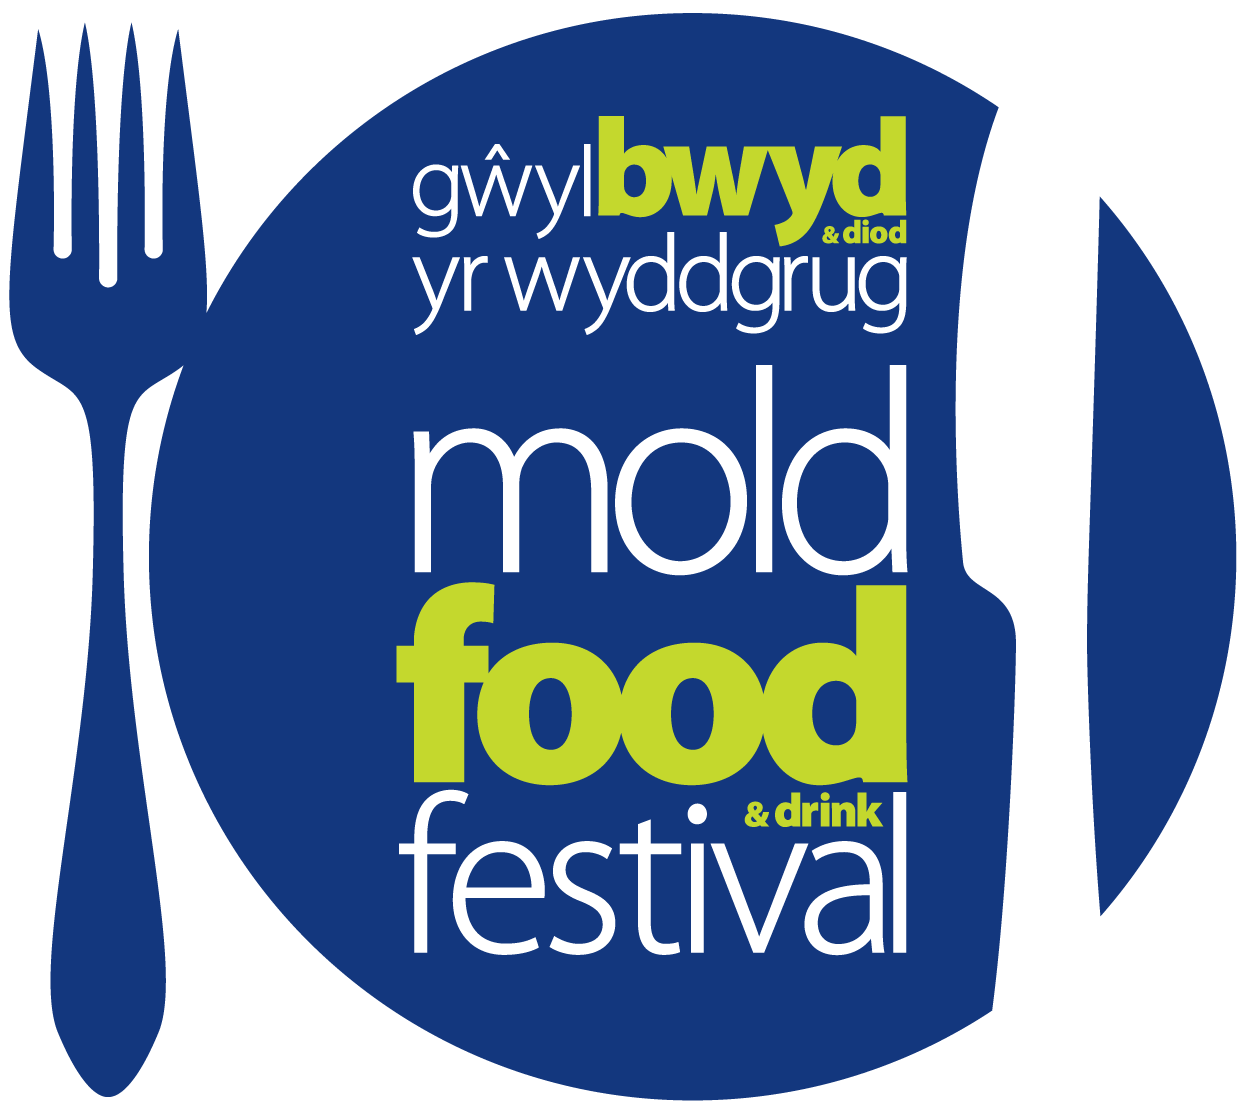 Mold Food and Drink Festival banner image